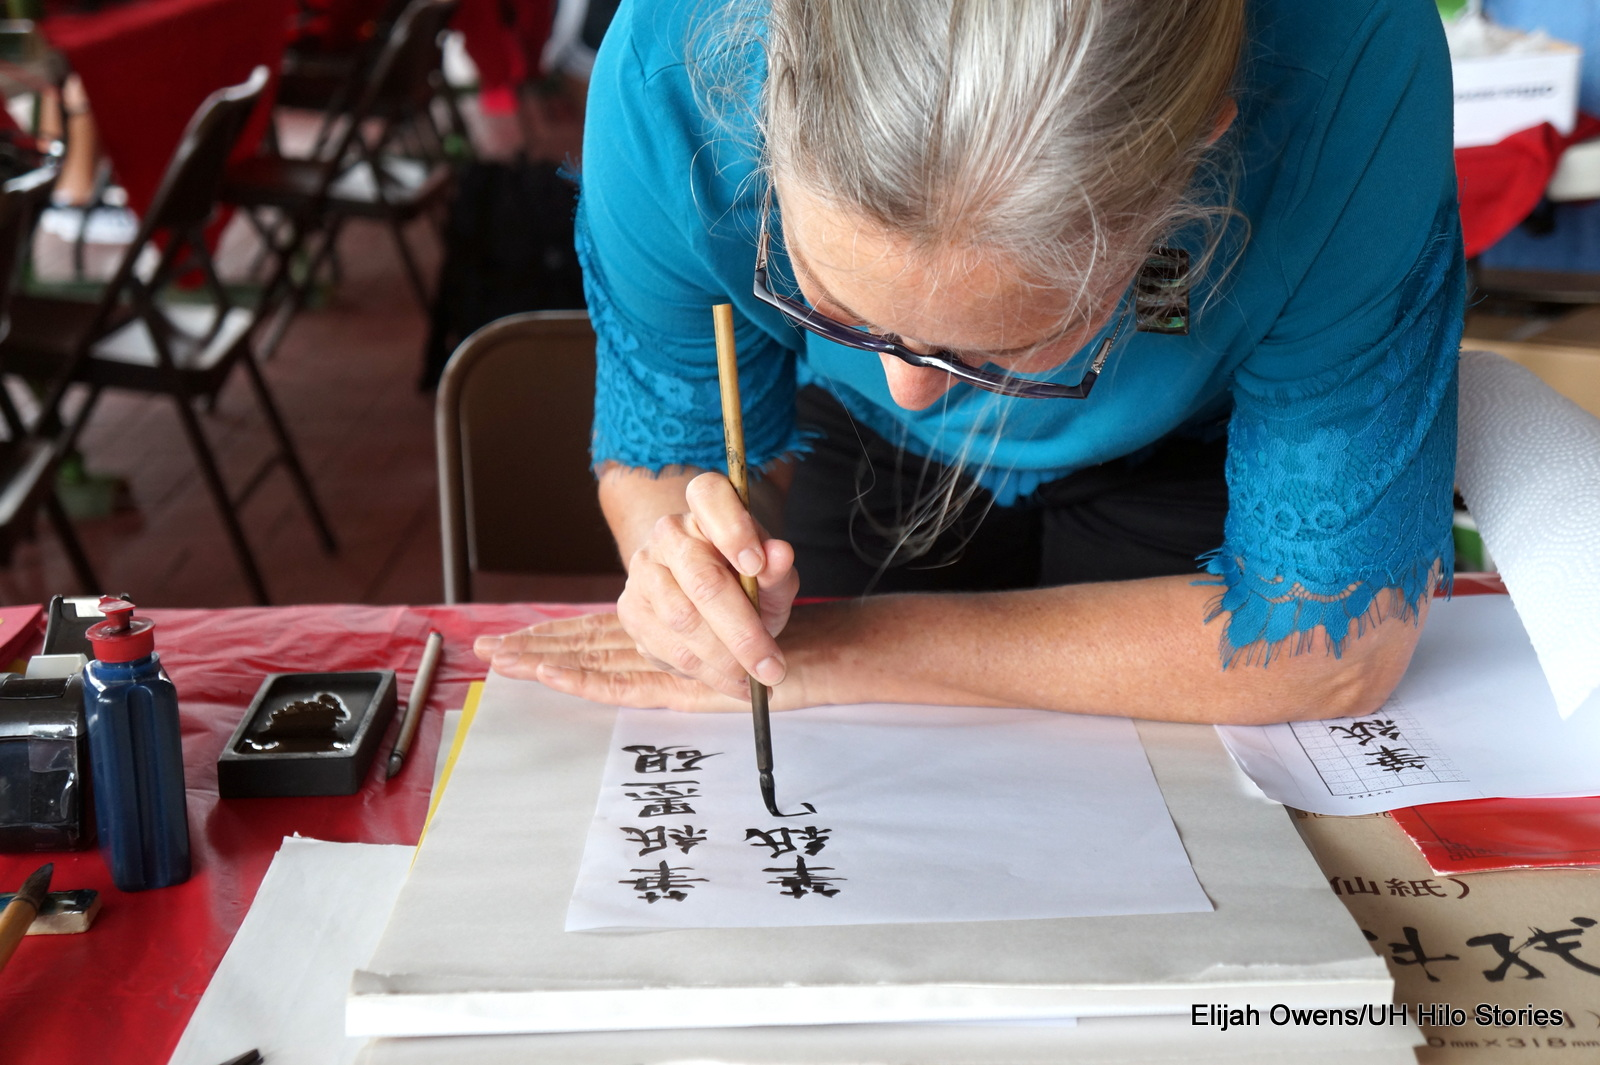 Artists bending over paper to do Chinese calligraphy.